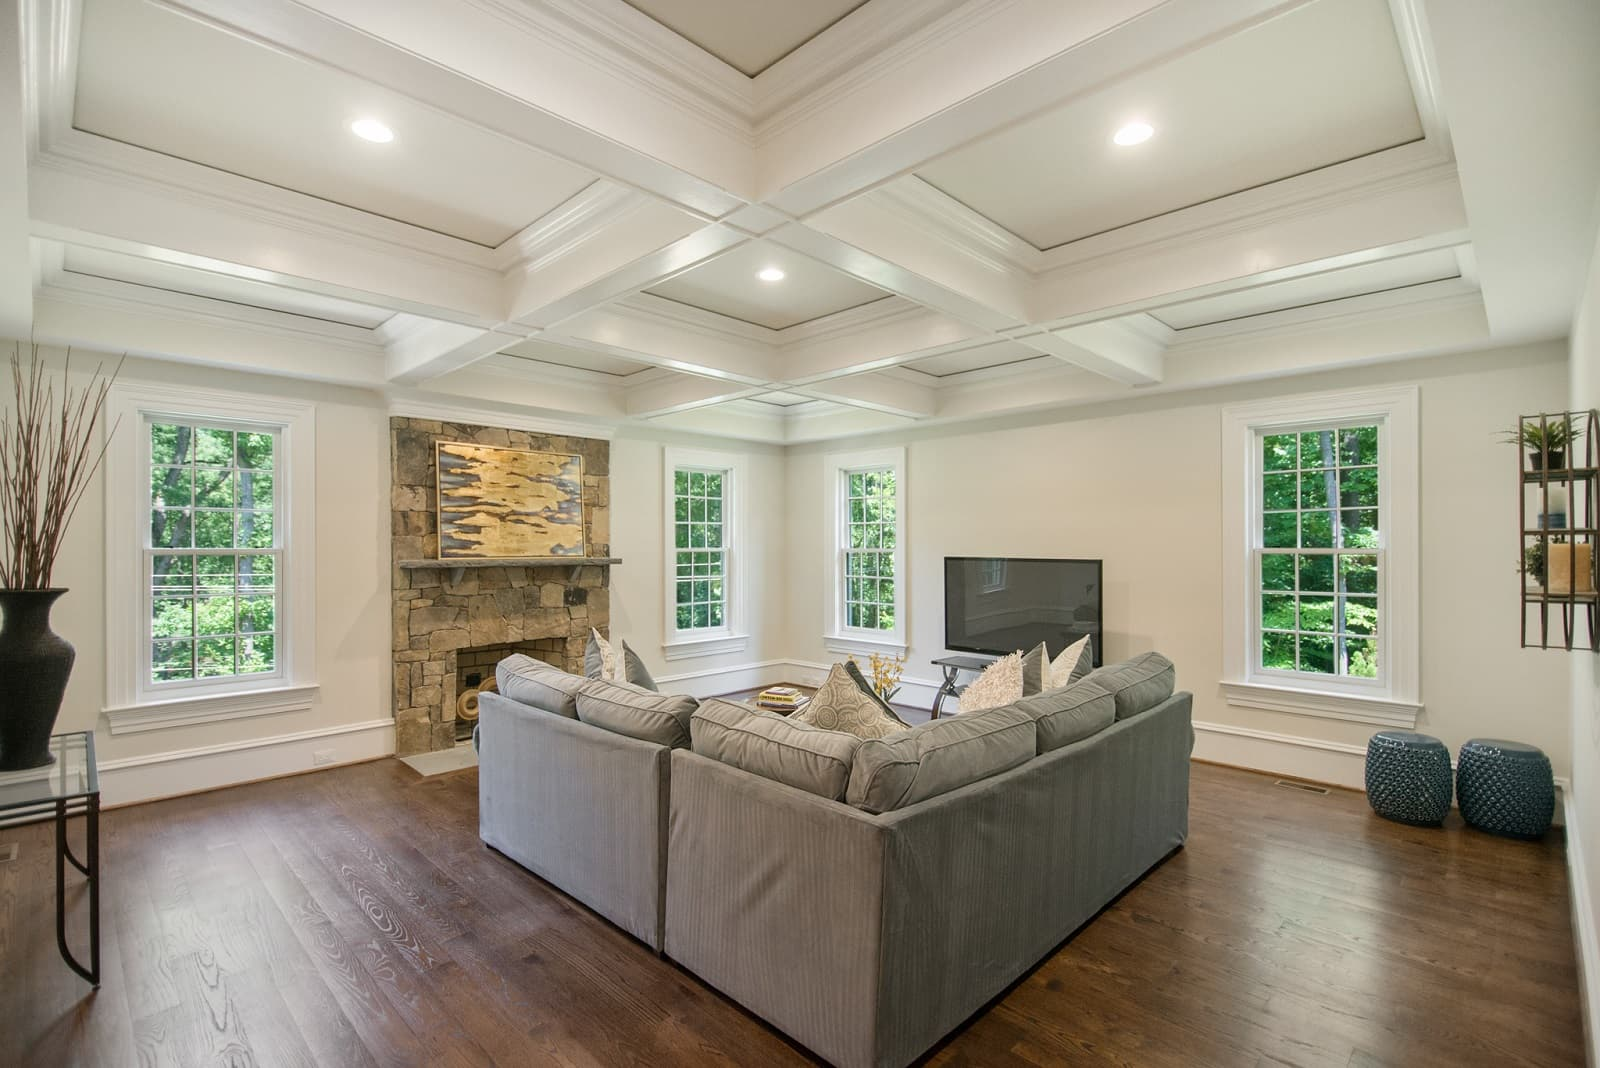 Real Estate Photography in Arlington - Living Area View